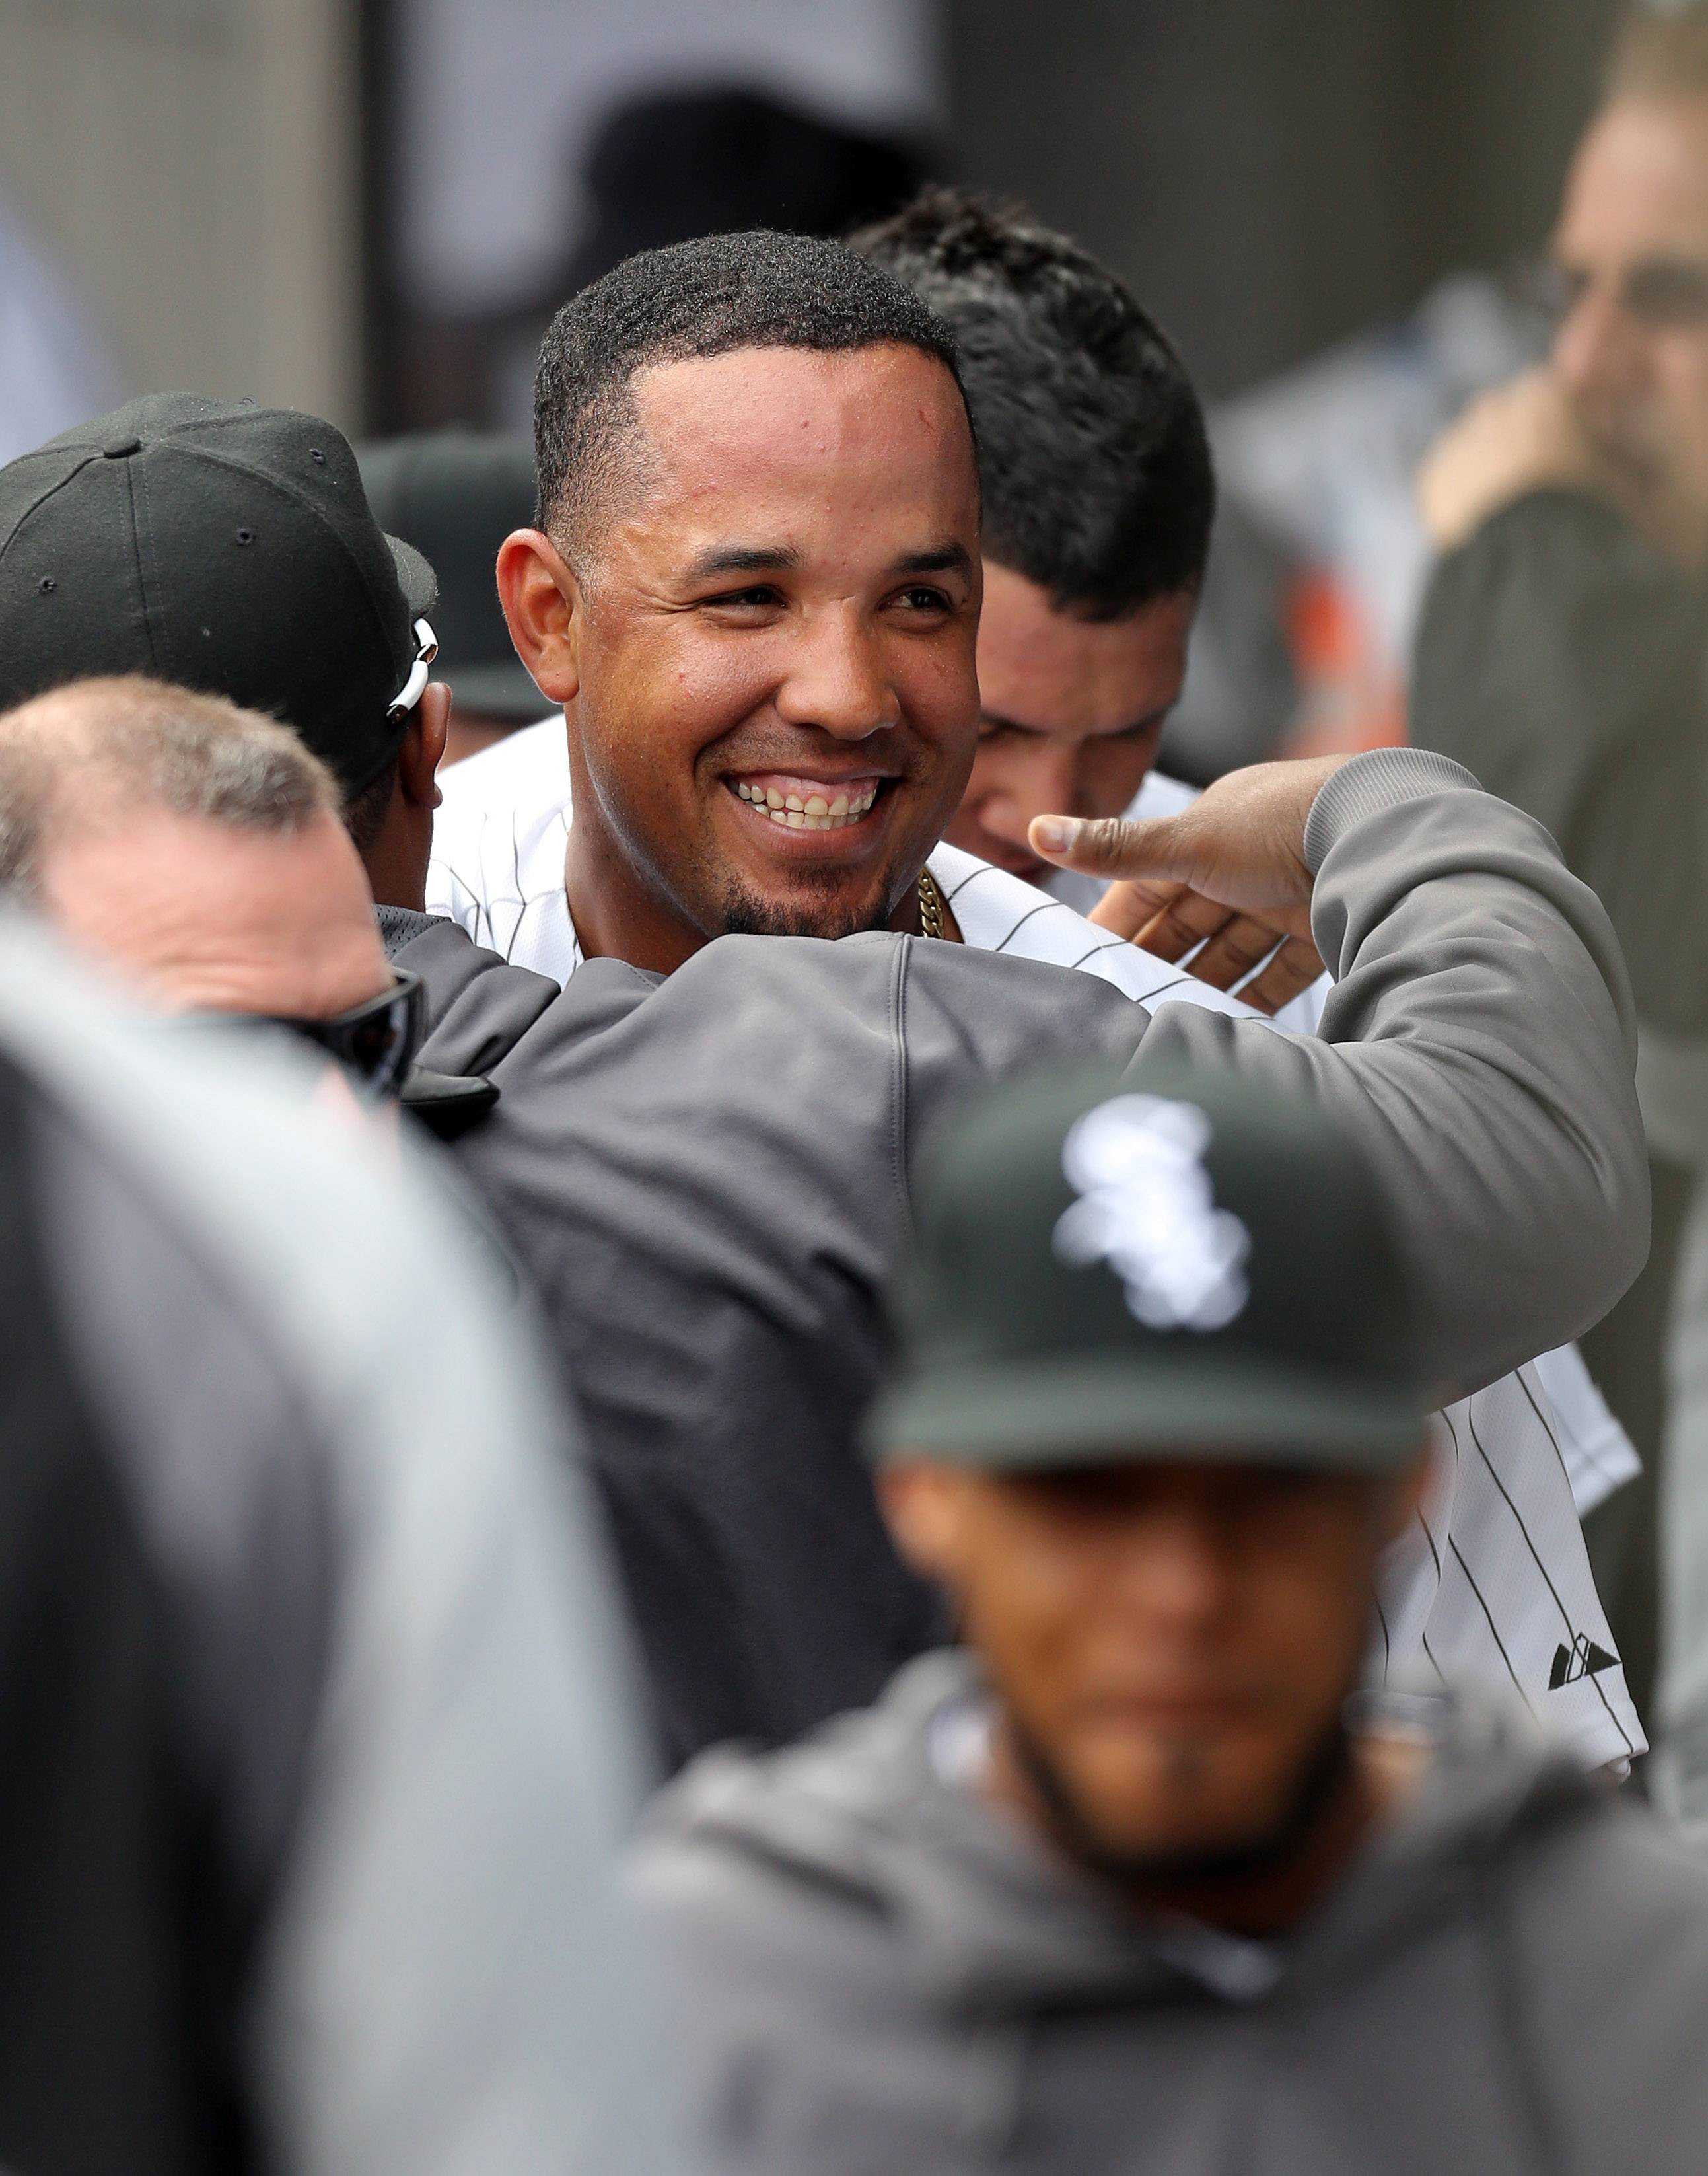 No rush to judgment on White Sox' Abreu